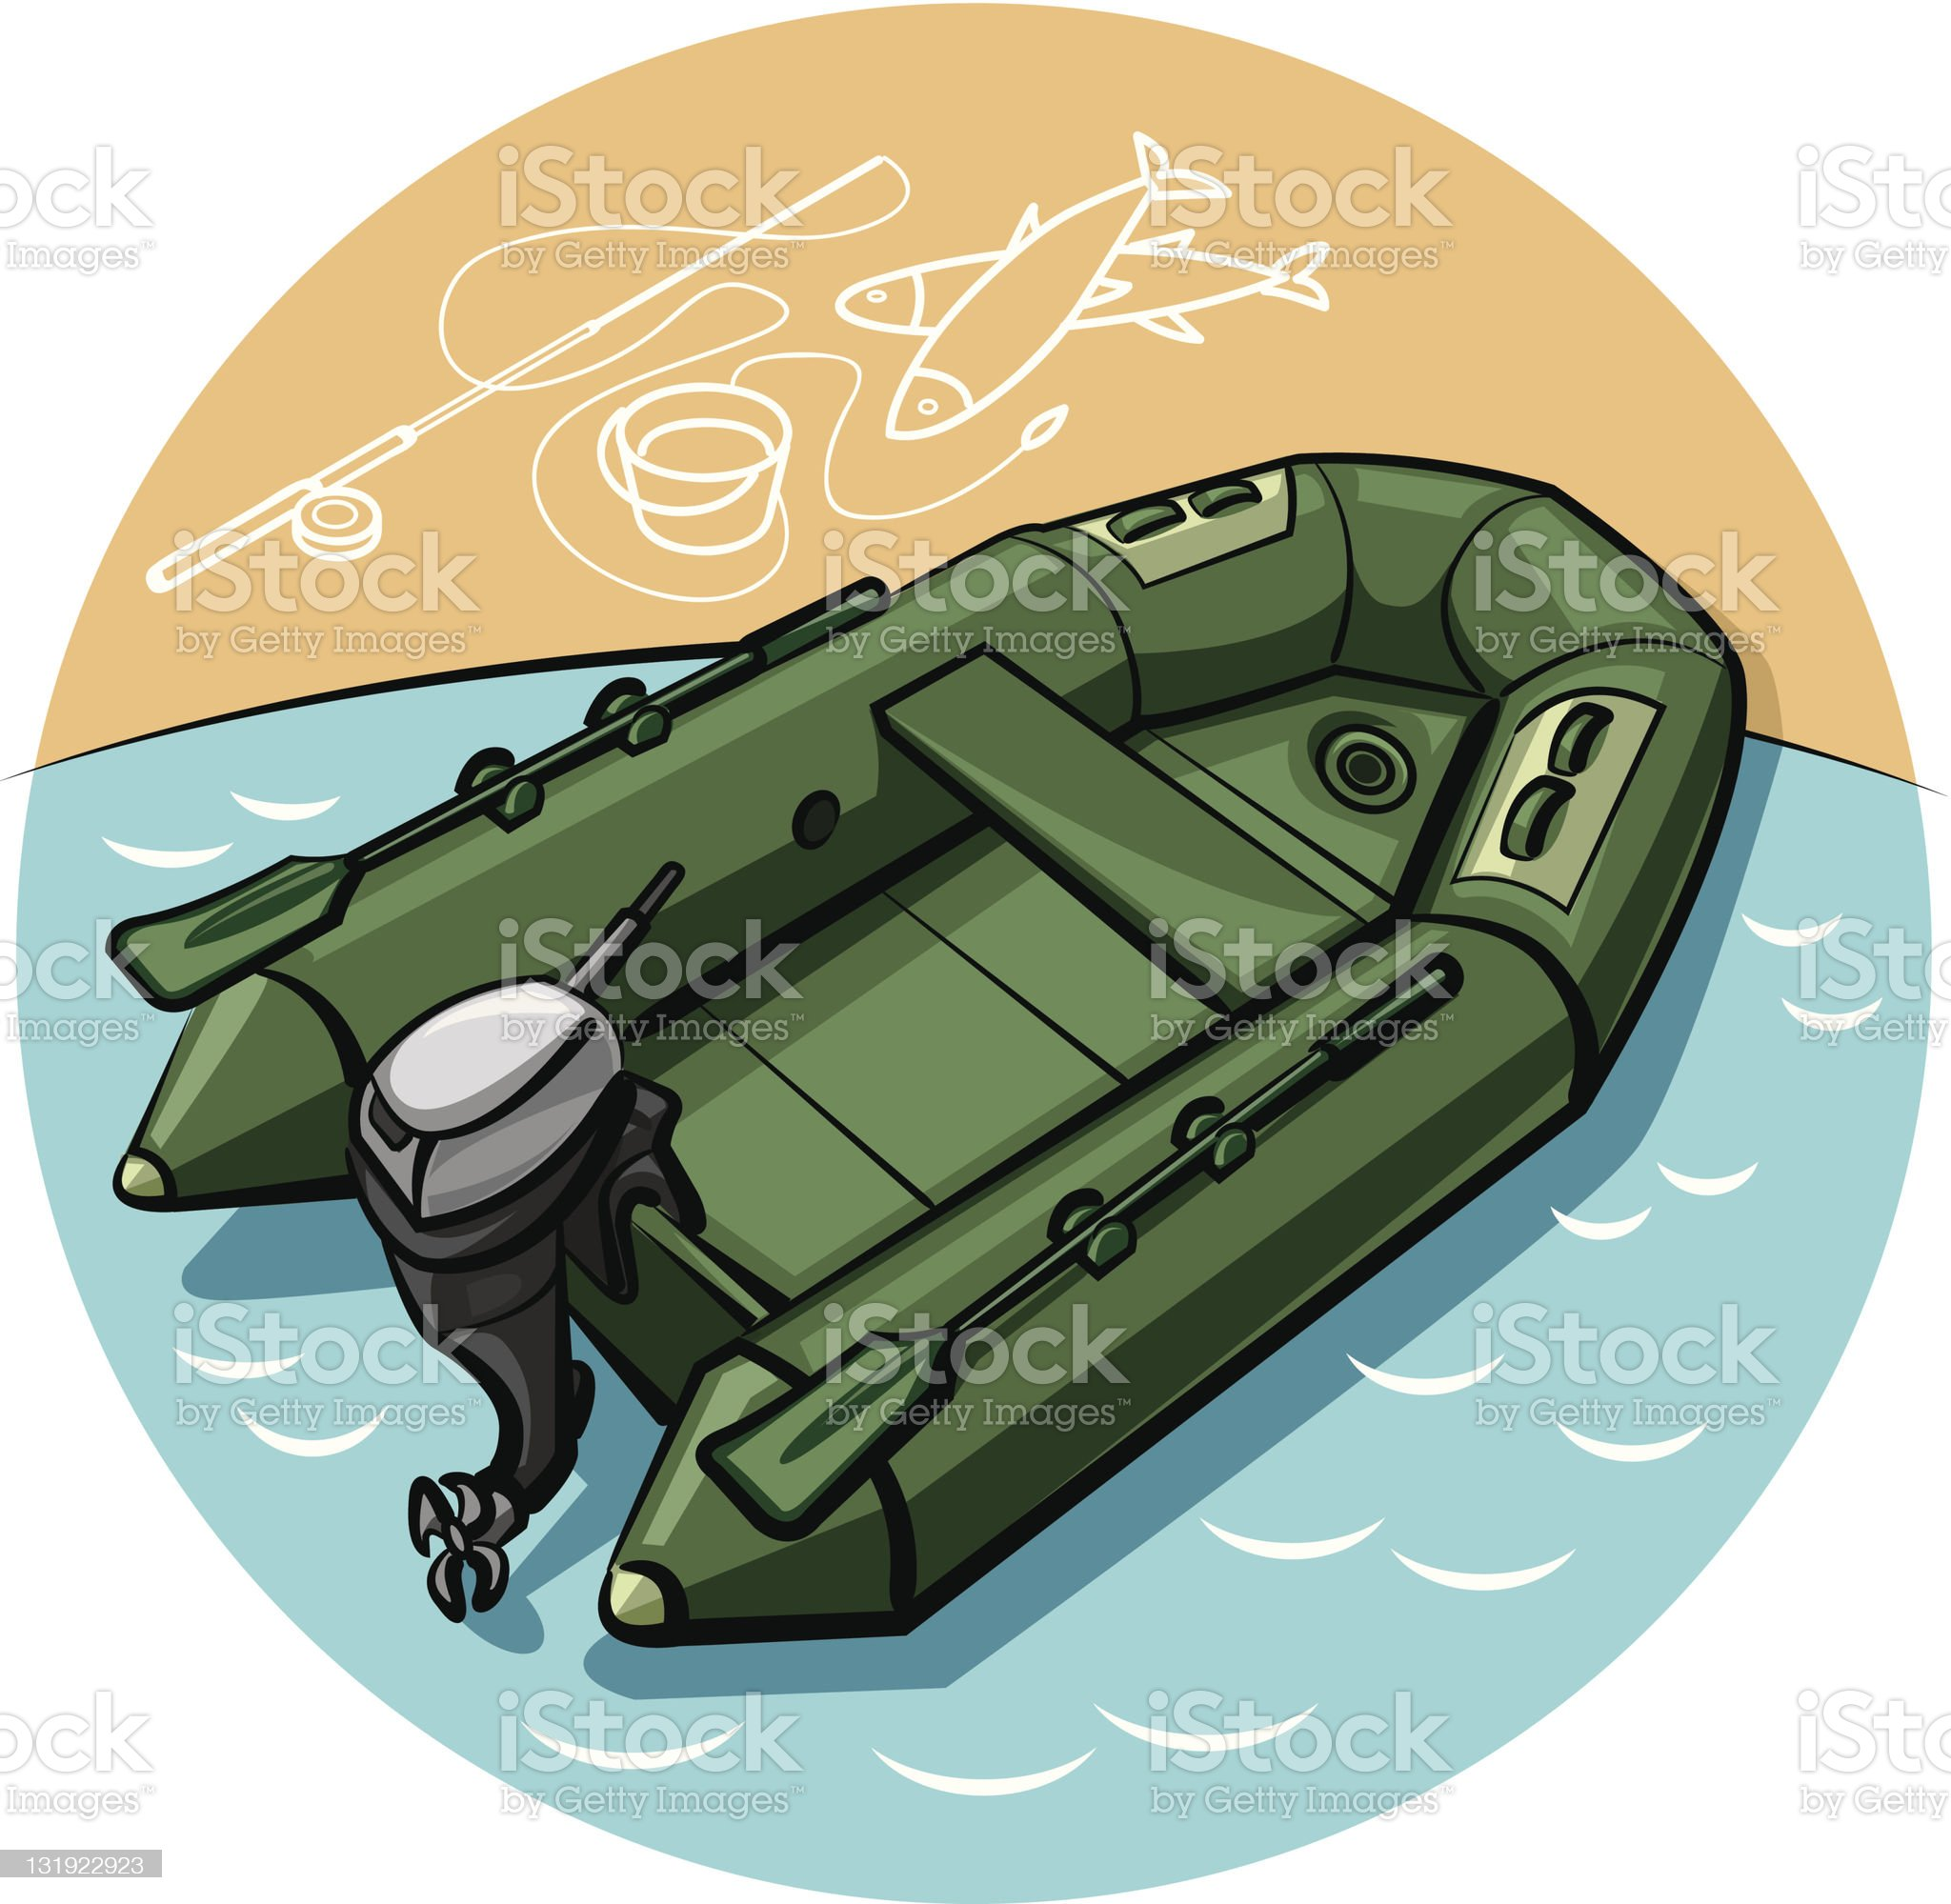 inflatable boat royalty-free stock vector art